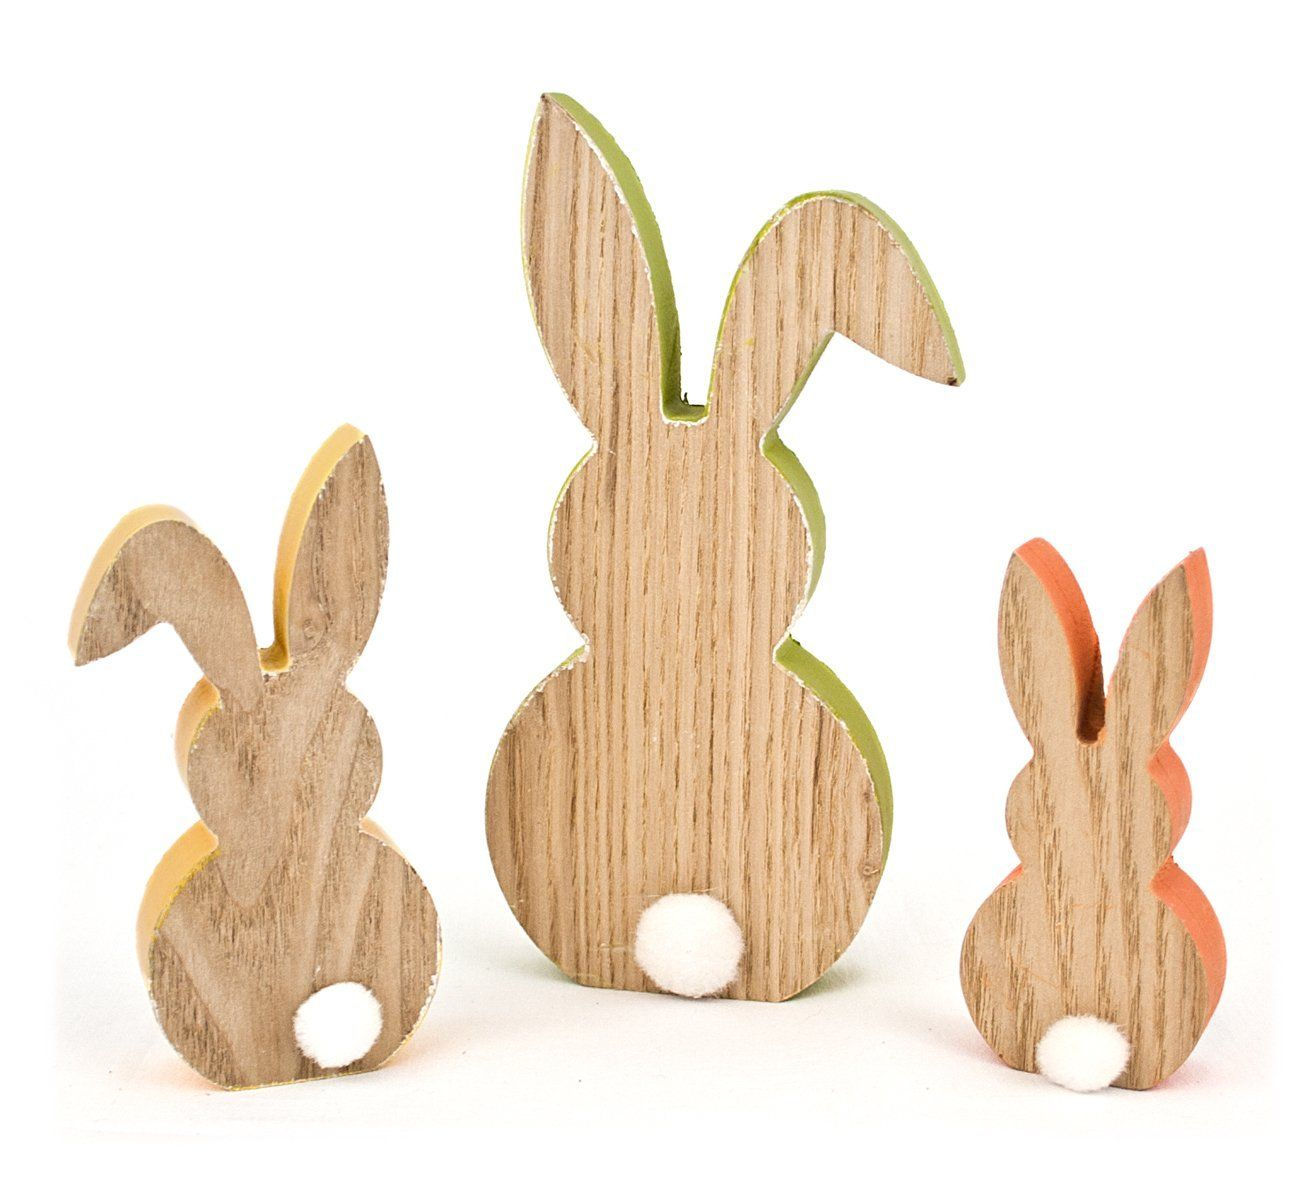 3x deko figur osterhase hase silhouette aus holz 18 12 10cm osterdeko fr hlingsdeko just. Black Bedroom Furniture Sets. Home Design Ideas